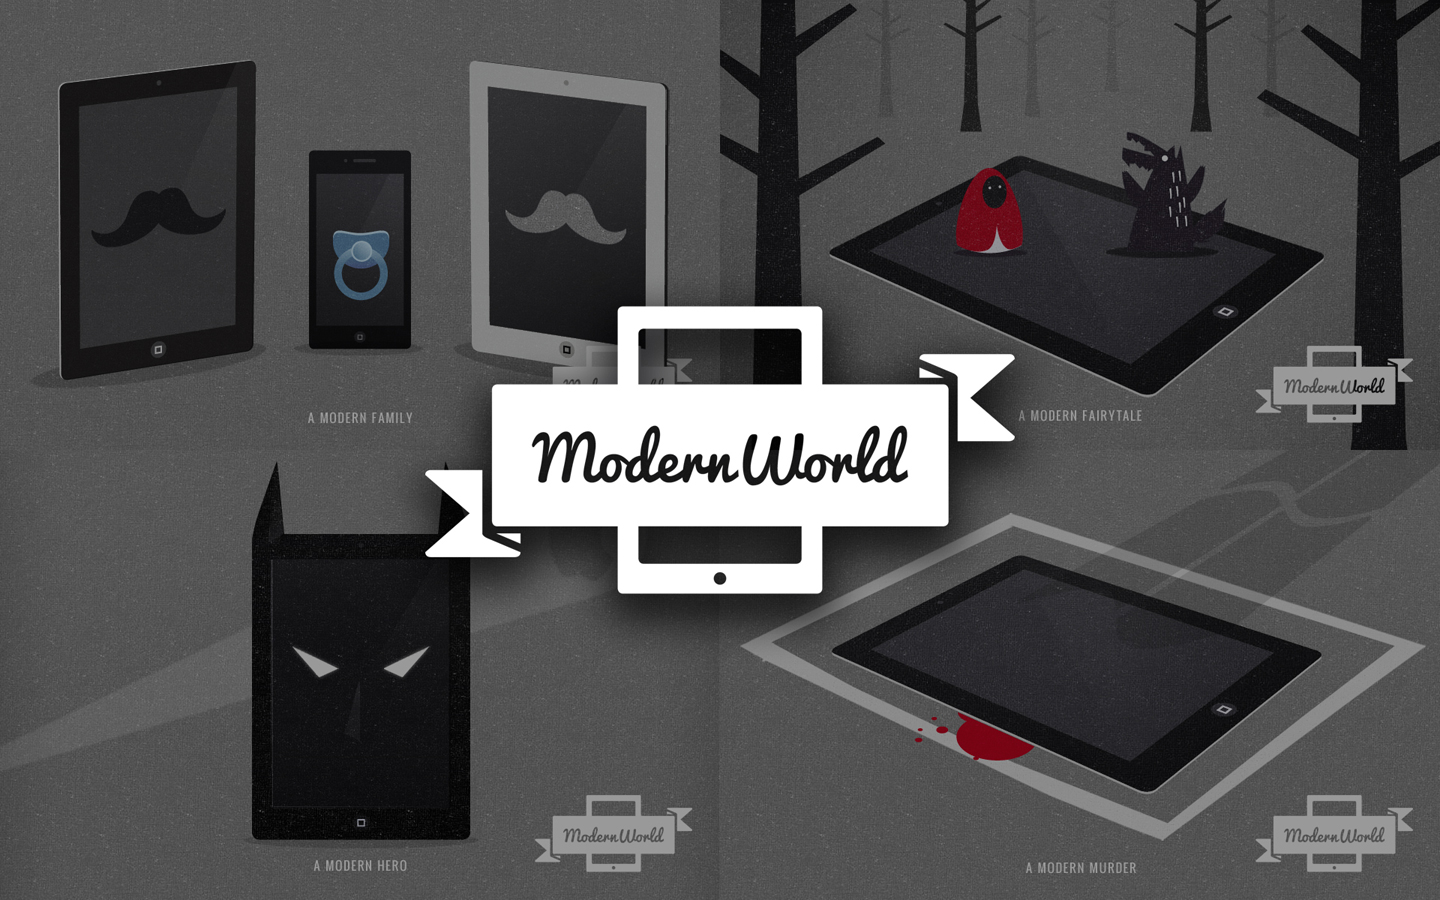 Modern World Illustrations, Logo Design in Mono over Image